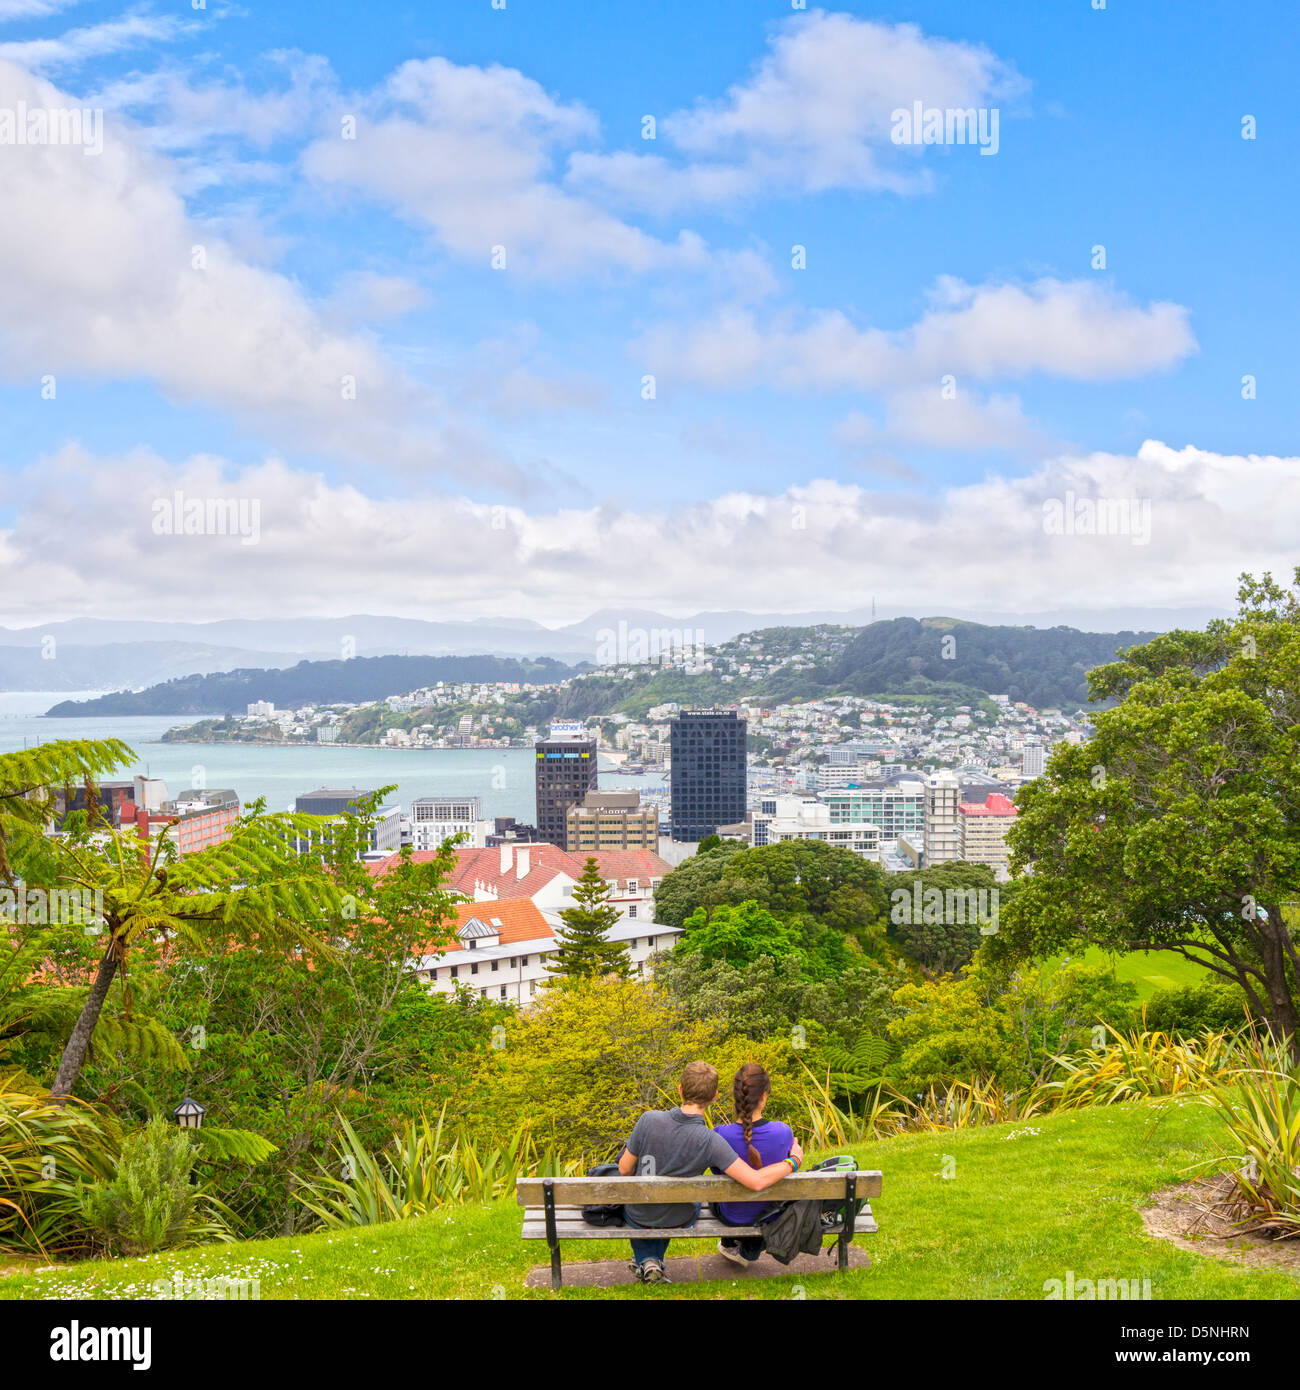 Wellington from the Botanic Gardens, young couple sitting on bench looking at view. - Stock Image